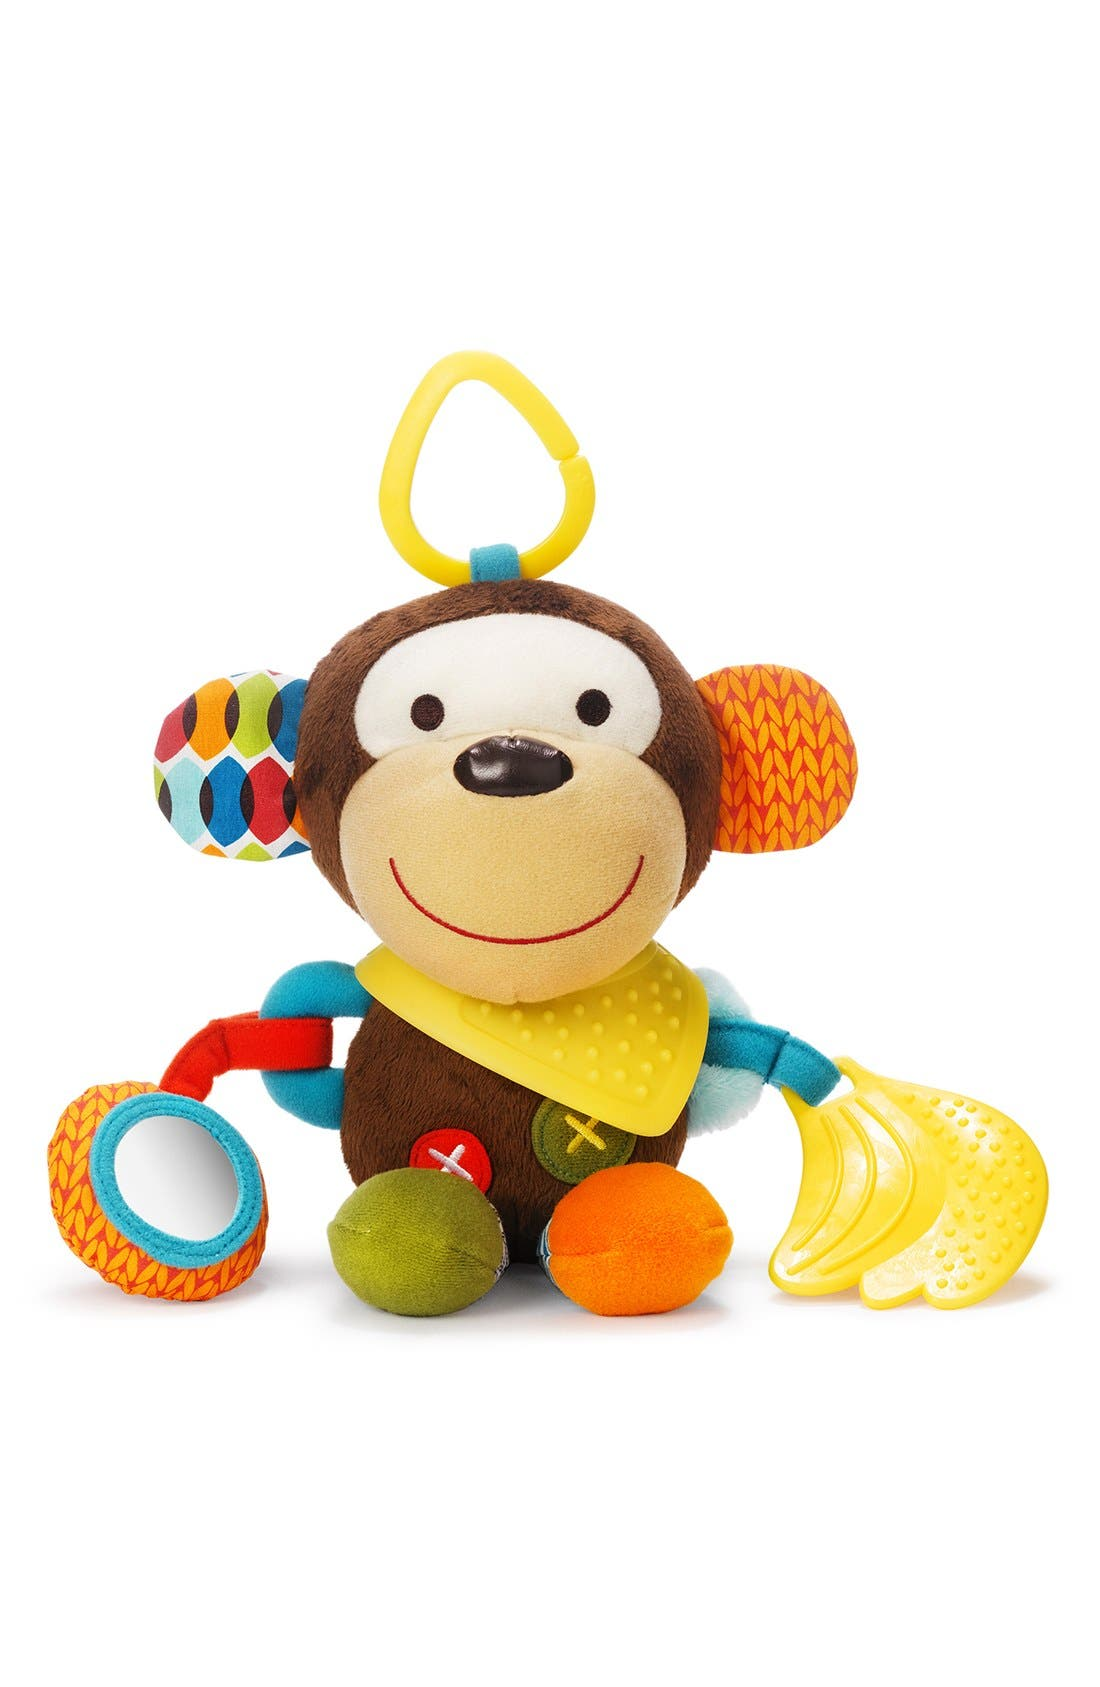 'Bandana Buddies' Activity Monkey,                             Main thumbnail 1, color,                             960